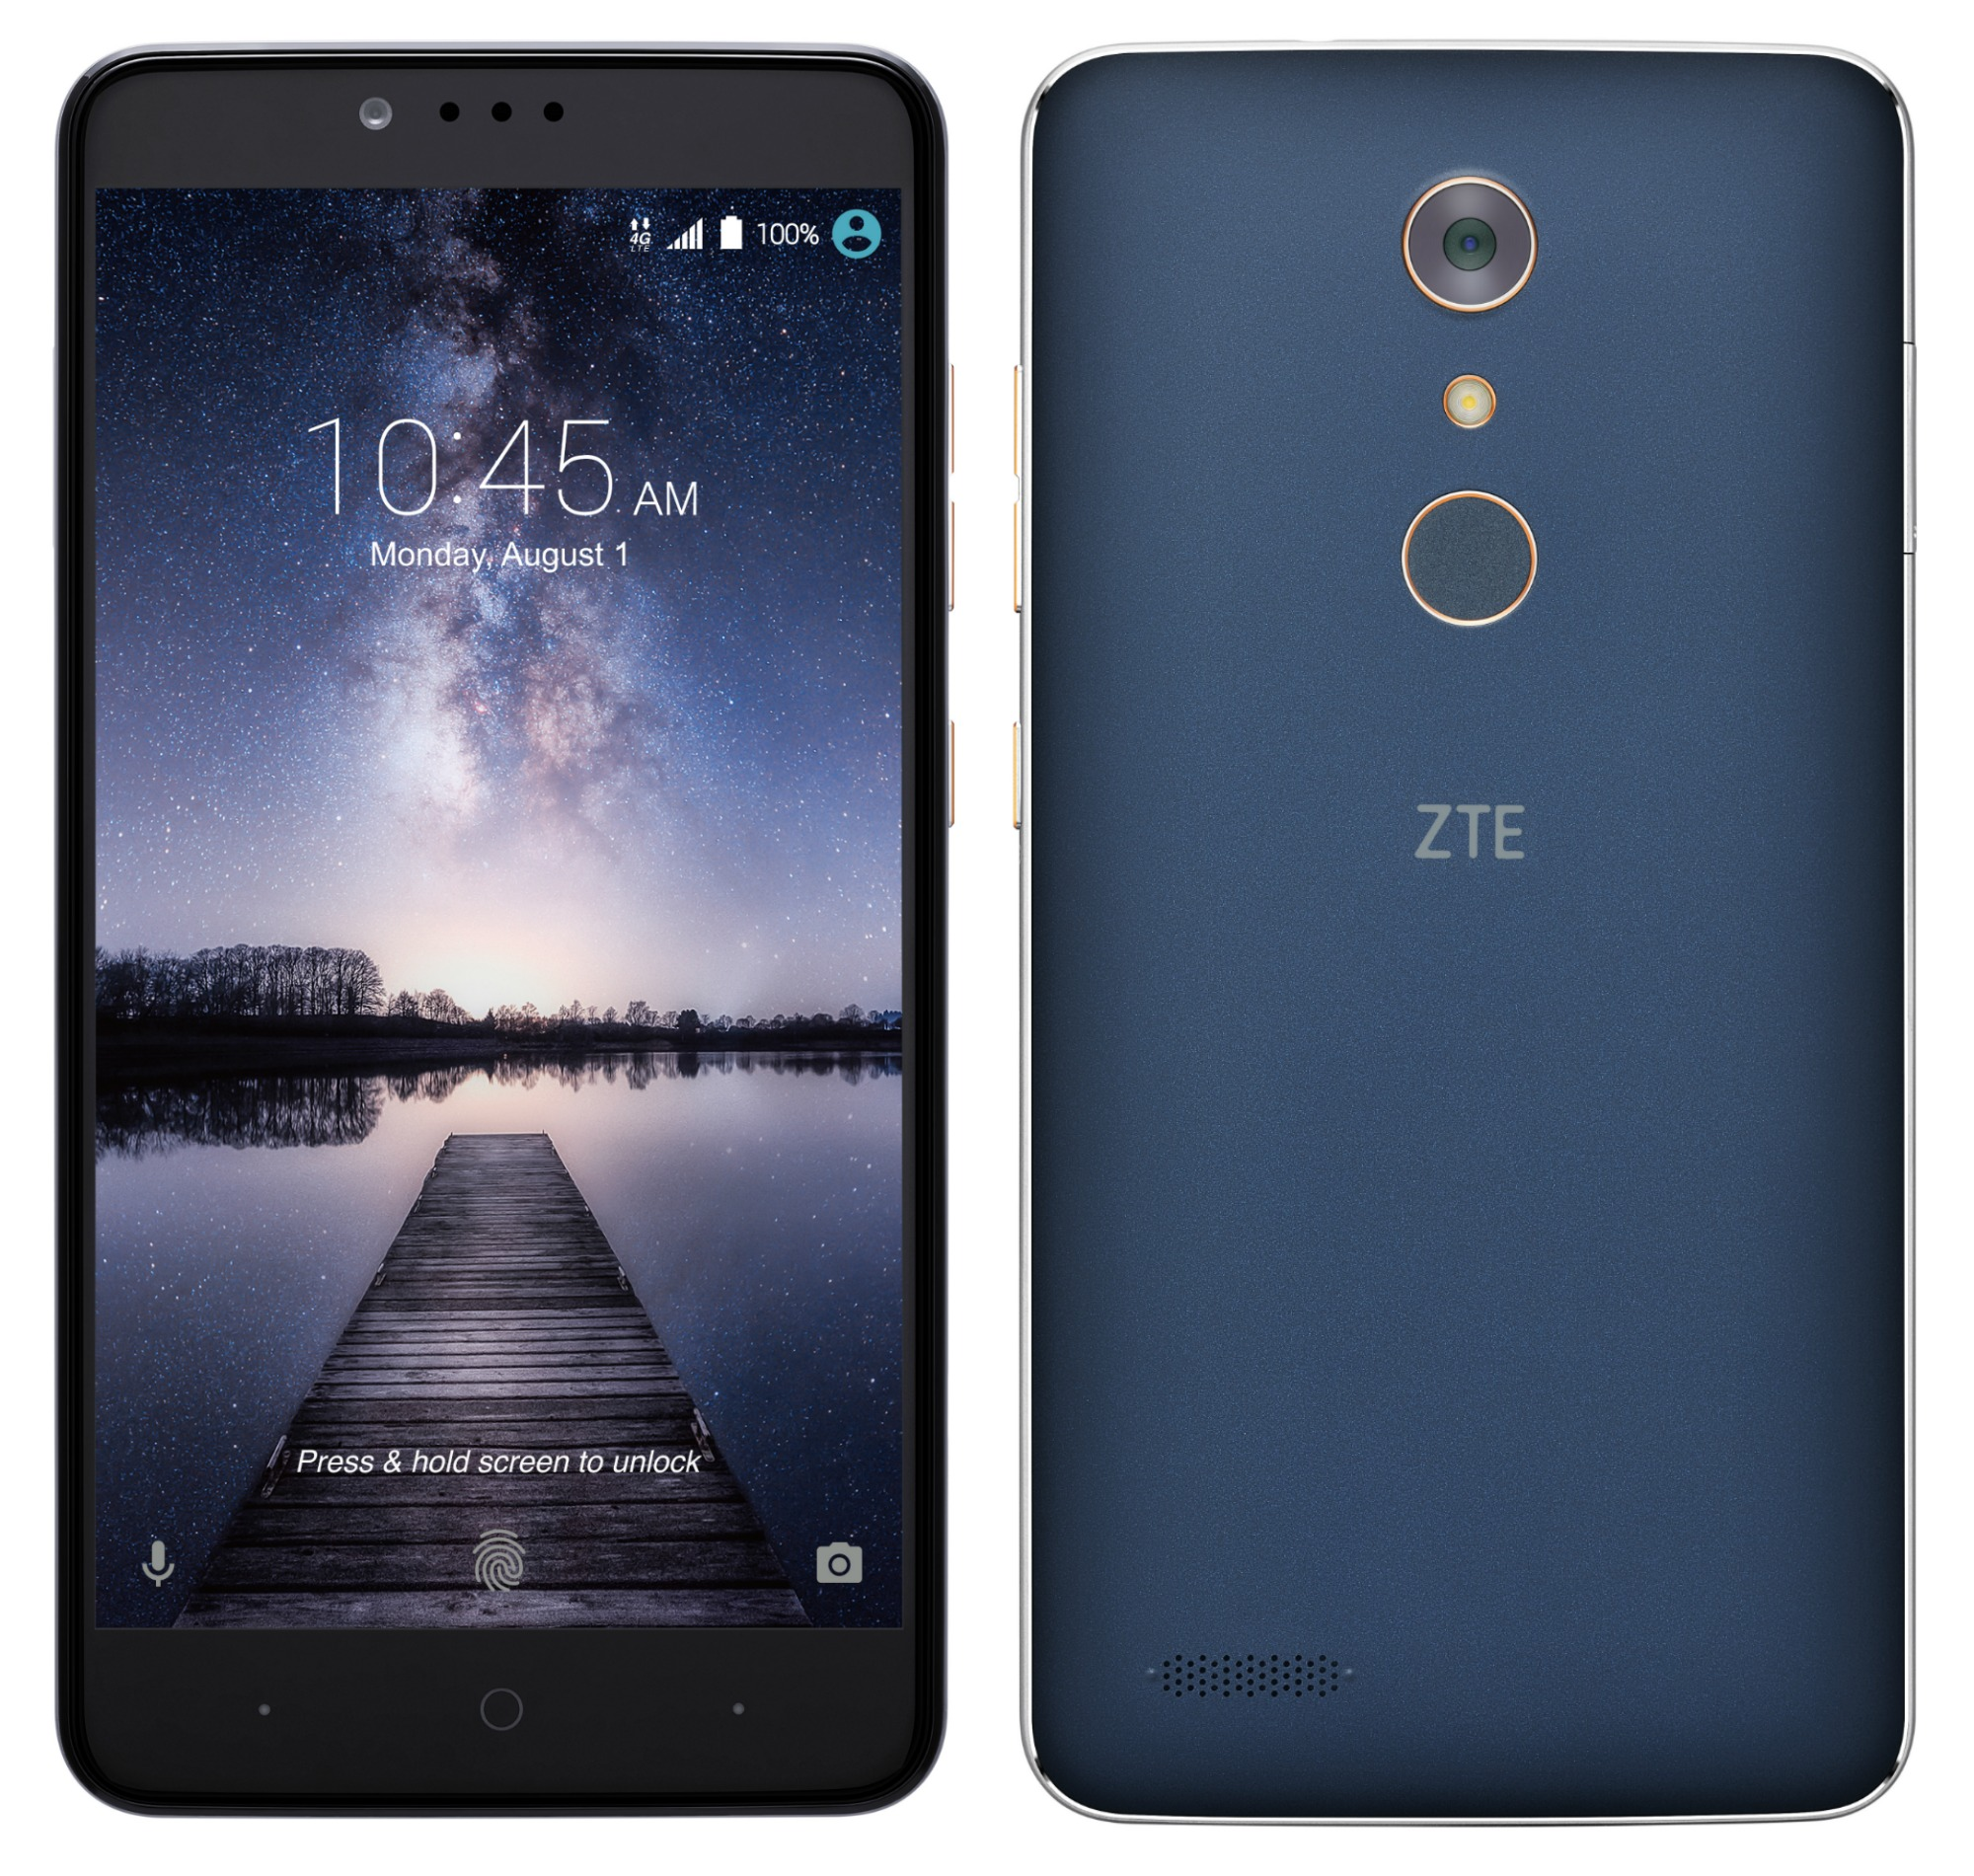 Disney zte zmax pro 2 phone Also: Xiaomi